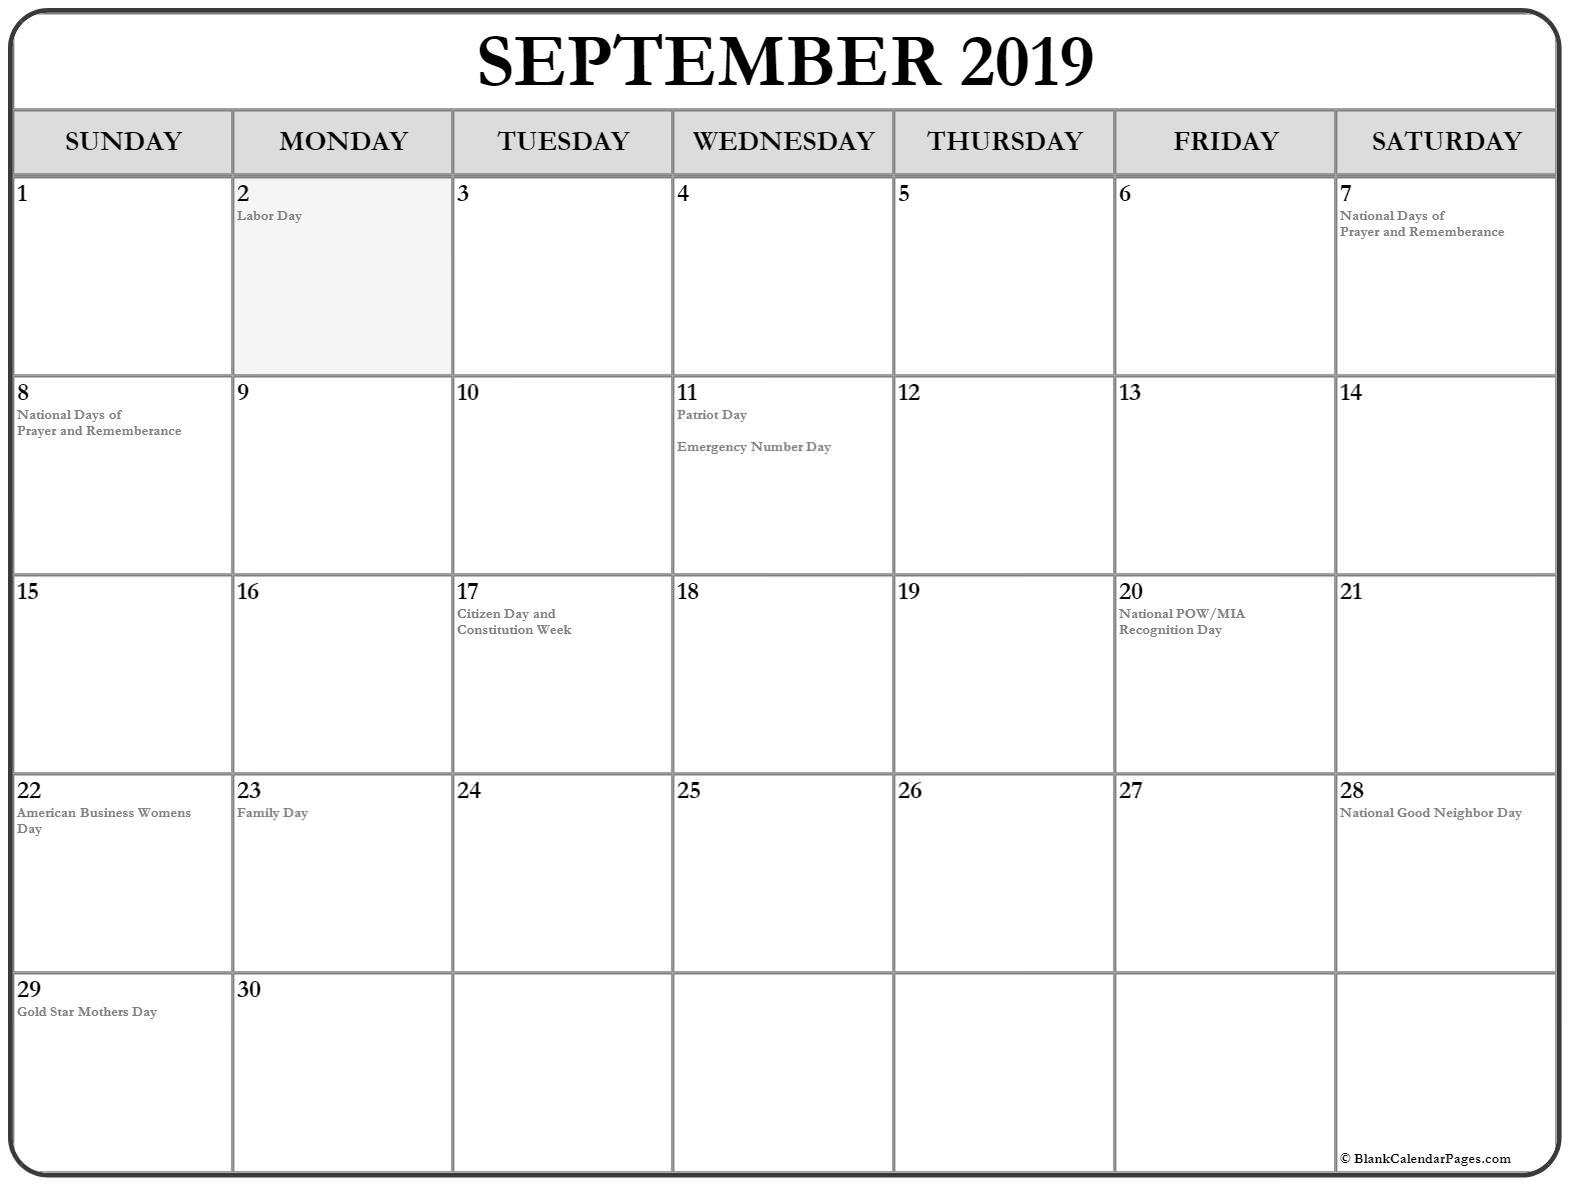 September 2019 Calendar | 56+ Templates Of 2019 Printable Calendars Calendar 2019 Sept